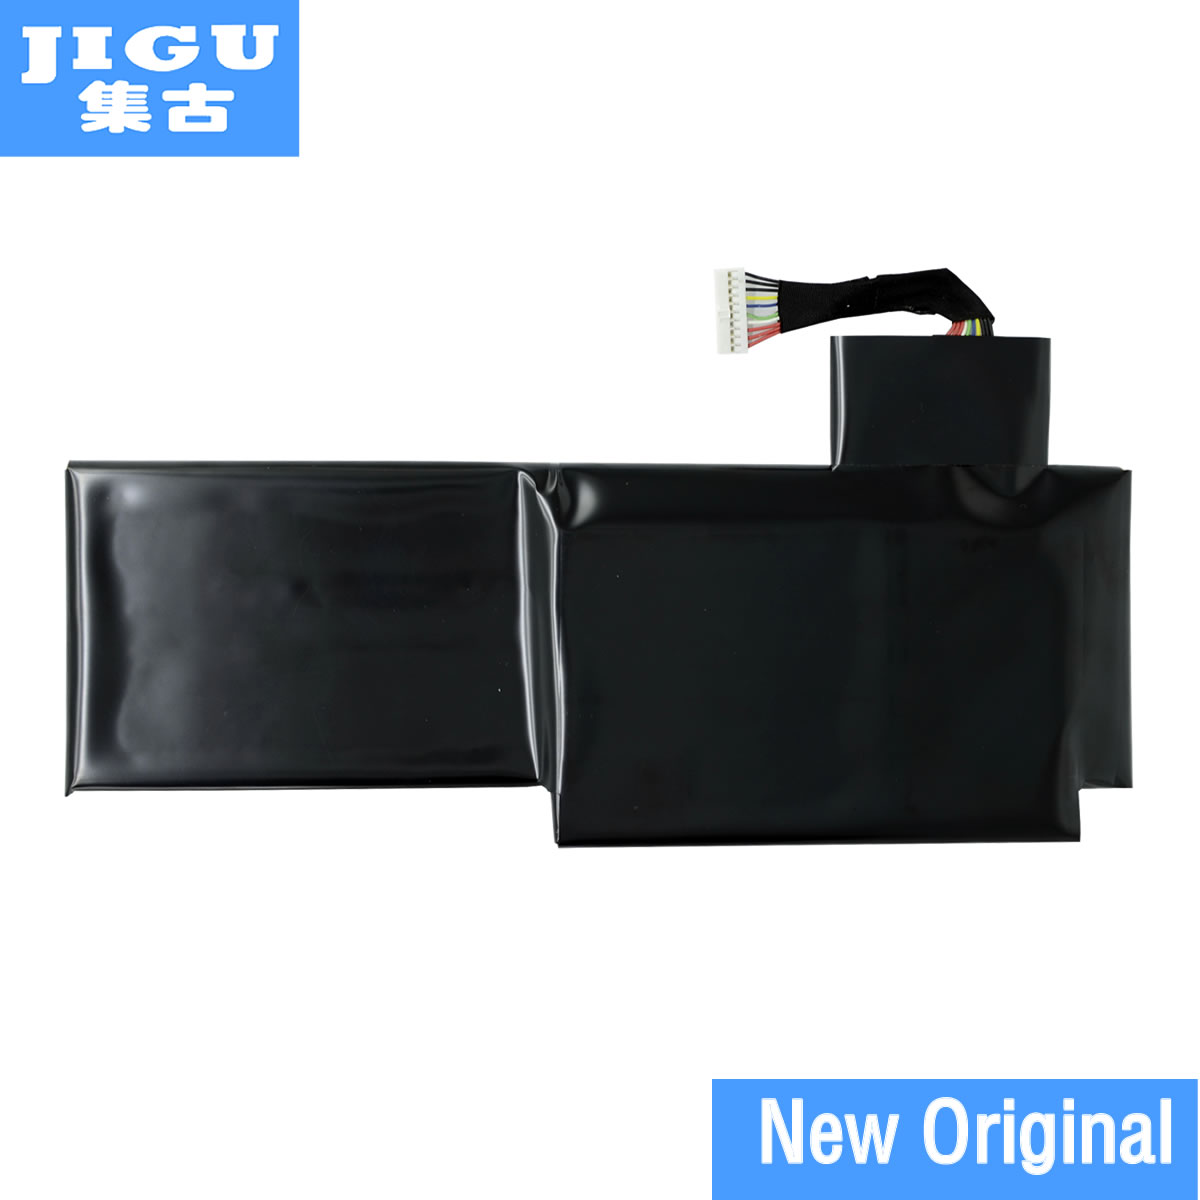 JIGU BTY-L76 MS-1771 Original laptop Battery For MSI GS70 2PC 2PE 2QC 2QD 2QE FOR MEDION X7613 MD98802 FOR HAIER 7G-700 jigu bty l76 ms 1771 original laptop battery for msi gs70 2pc 2pe 2qc 2qd 2qe for medion x7613 md98802 for haier 7g 700